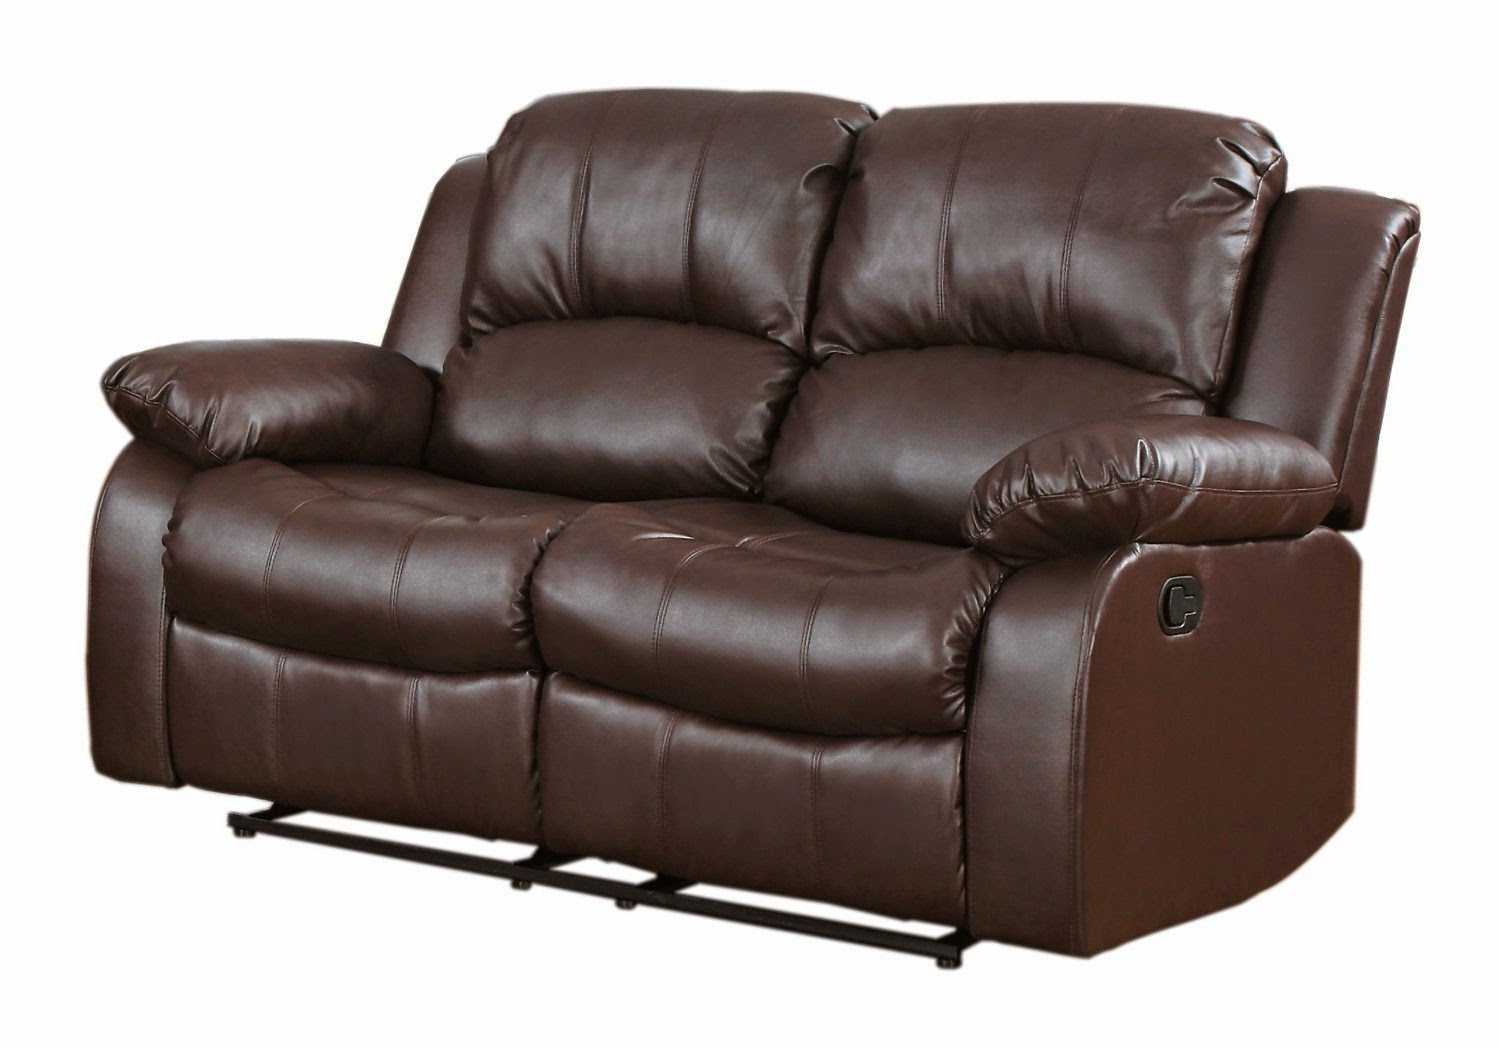 best sofa brands best leather reclining sofa brands reviews 2 seat 31561